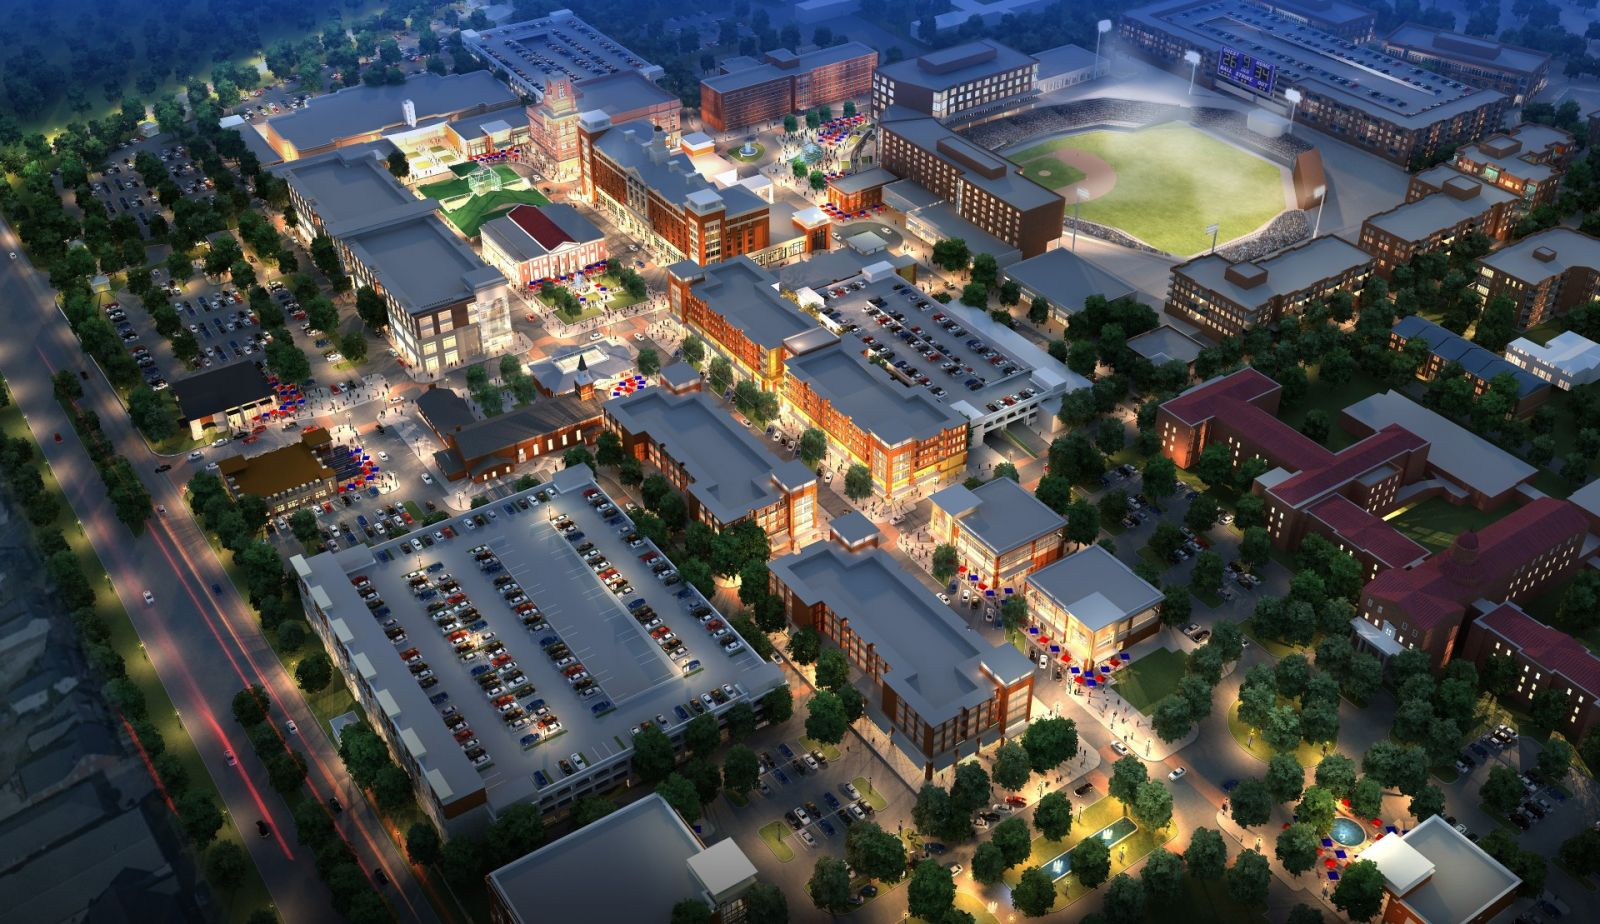 Several projects, including a planned new brewery and the relocation of the University of South Carolina's medical school, have picked up momentum at the 181-acre, mixed-use BullStreet District development. (Rendering/File)